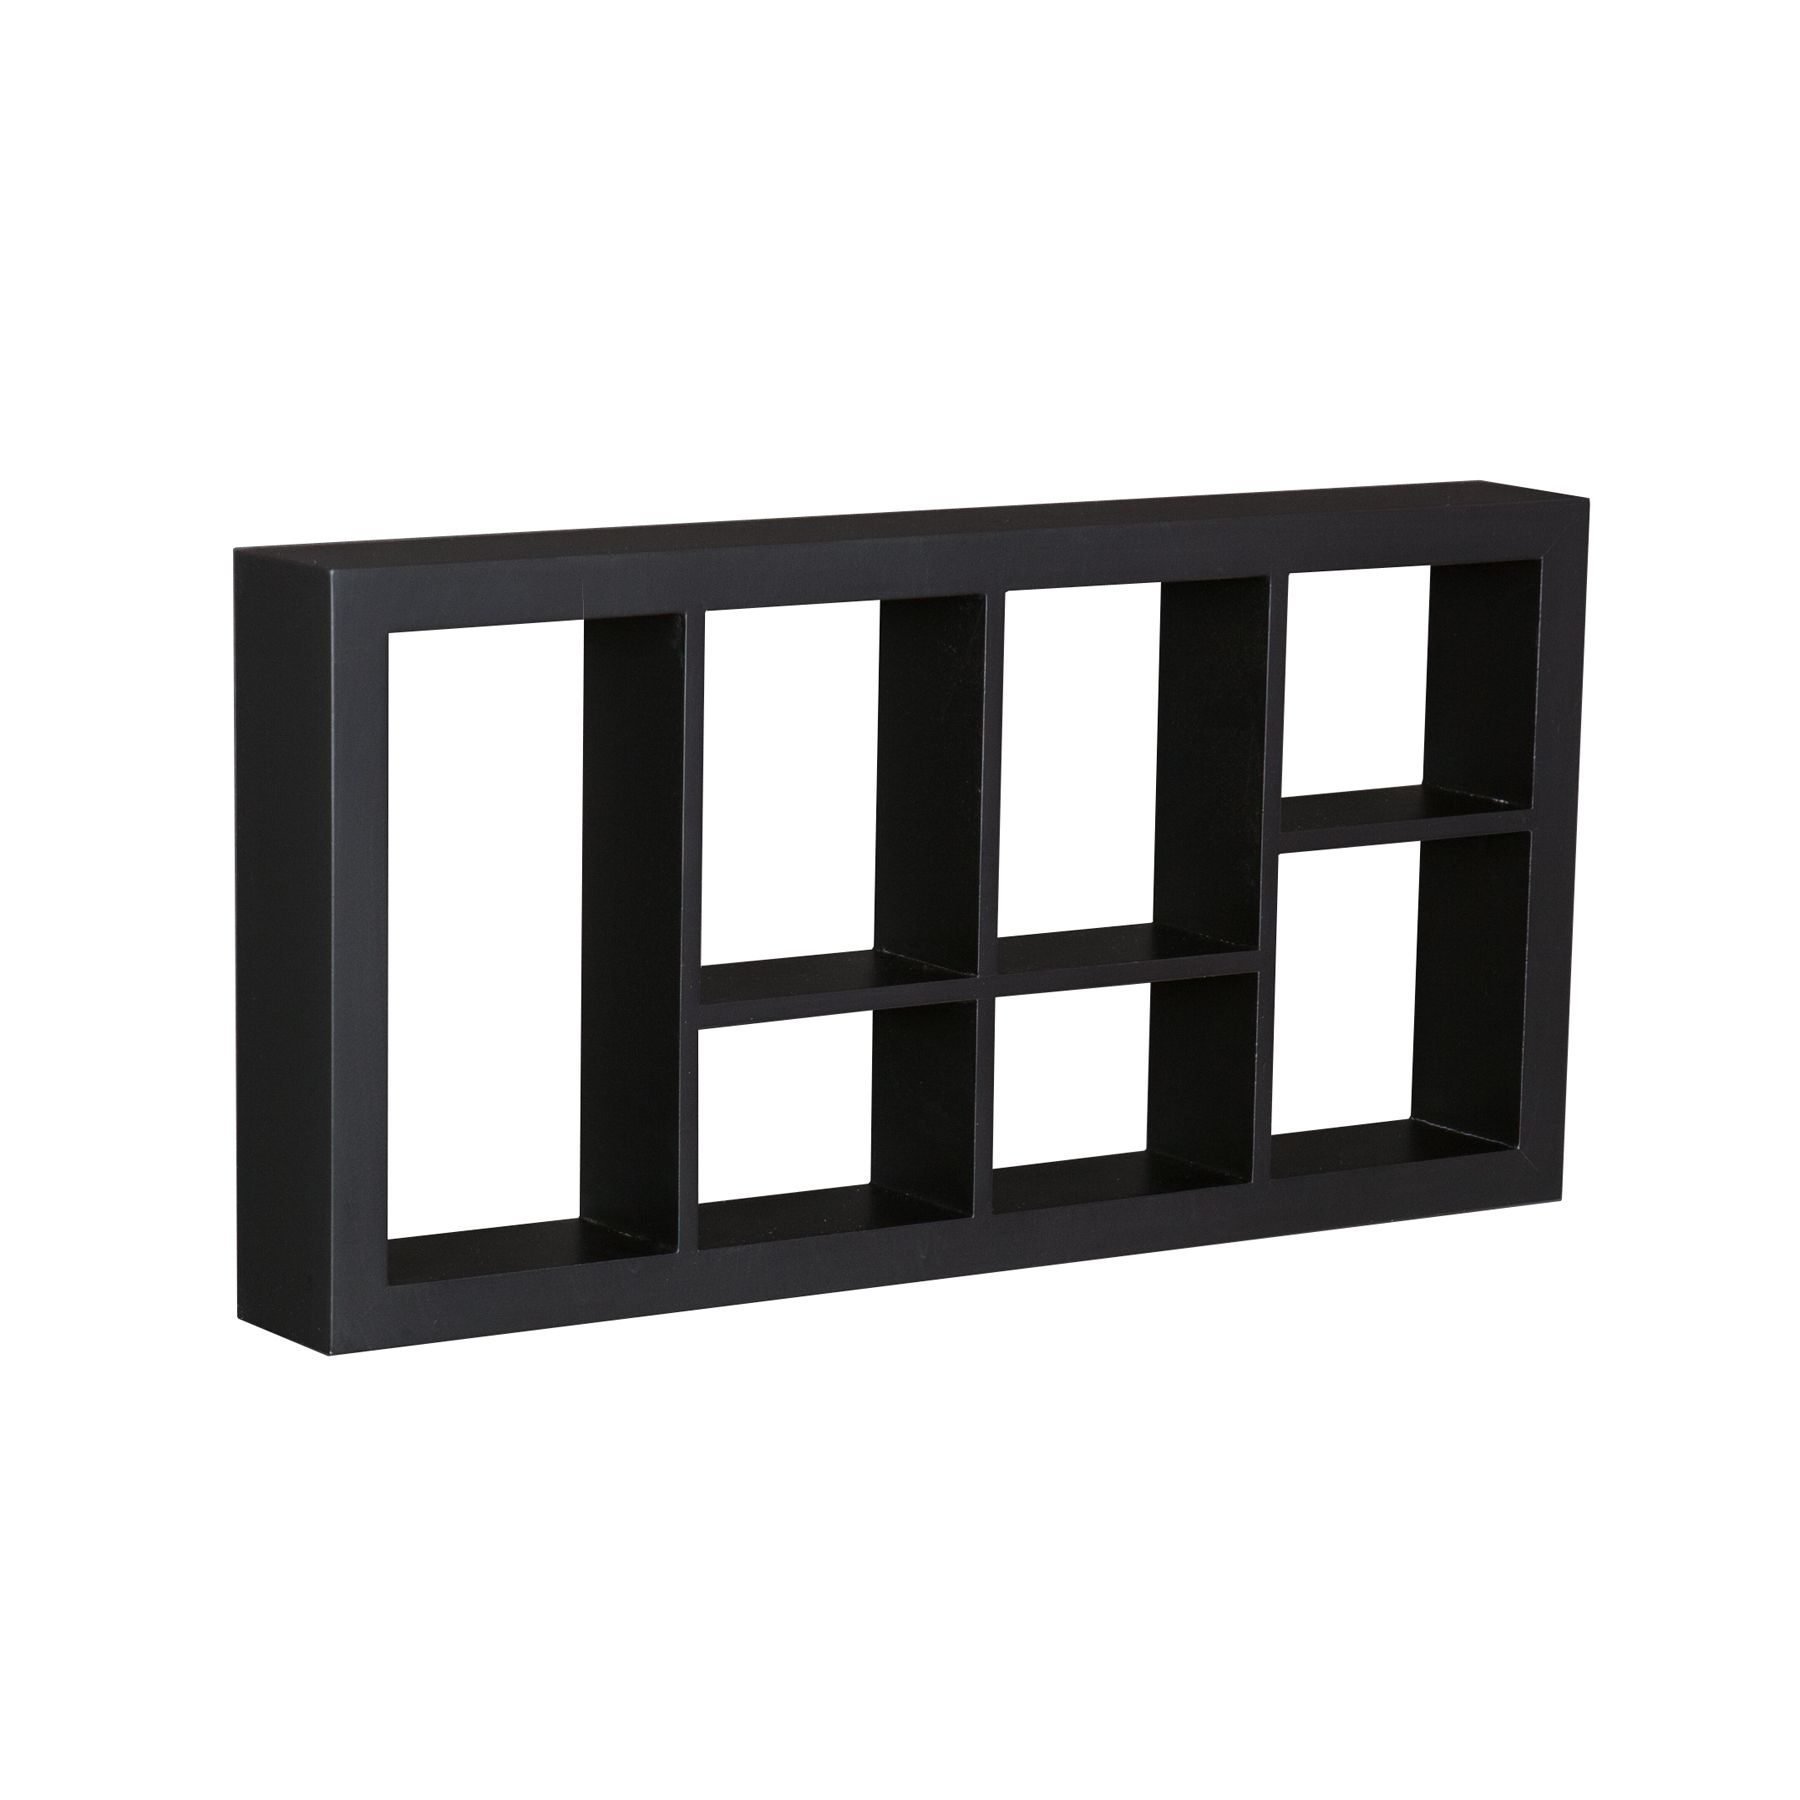 This Floating cube display shelf will provide an easy way to update any wall.  A traditional or contemporary setting to show off souvenirs, small treasures or art, this wall cube creates a dynamic arrangement in a living or dining room.